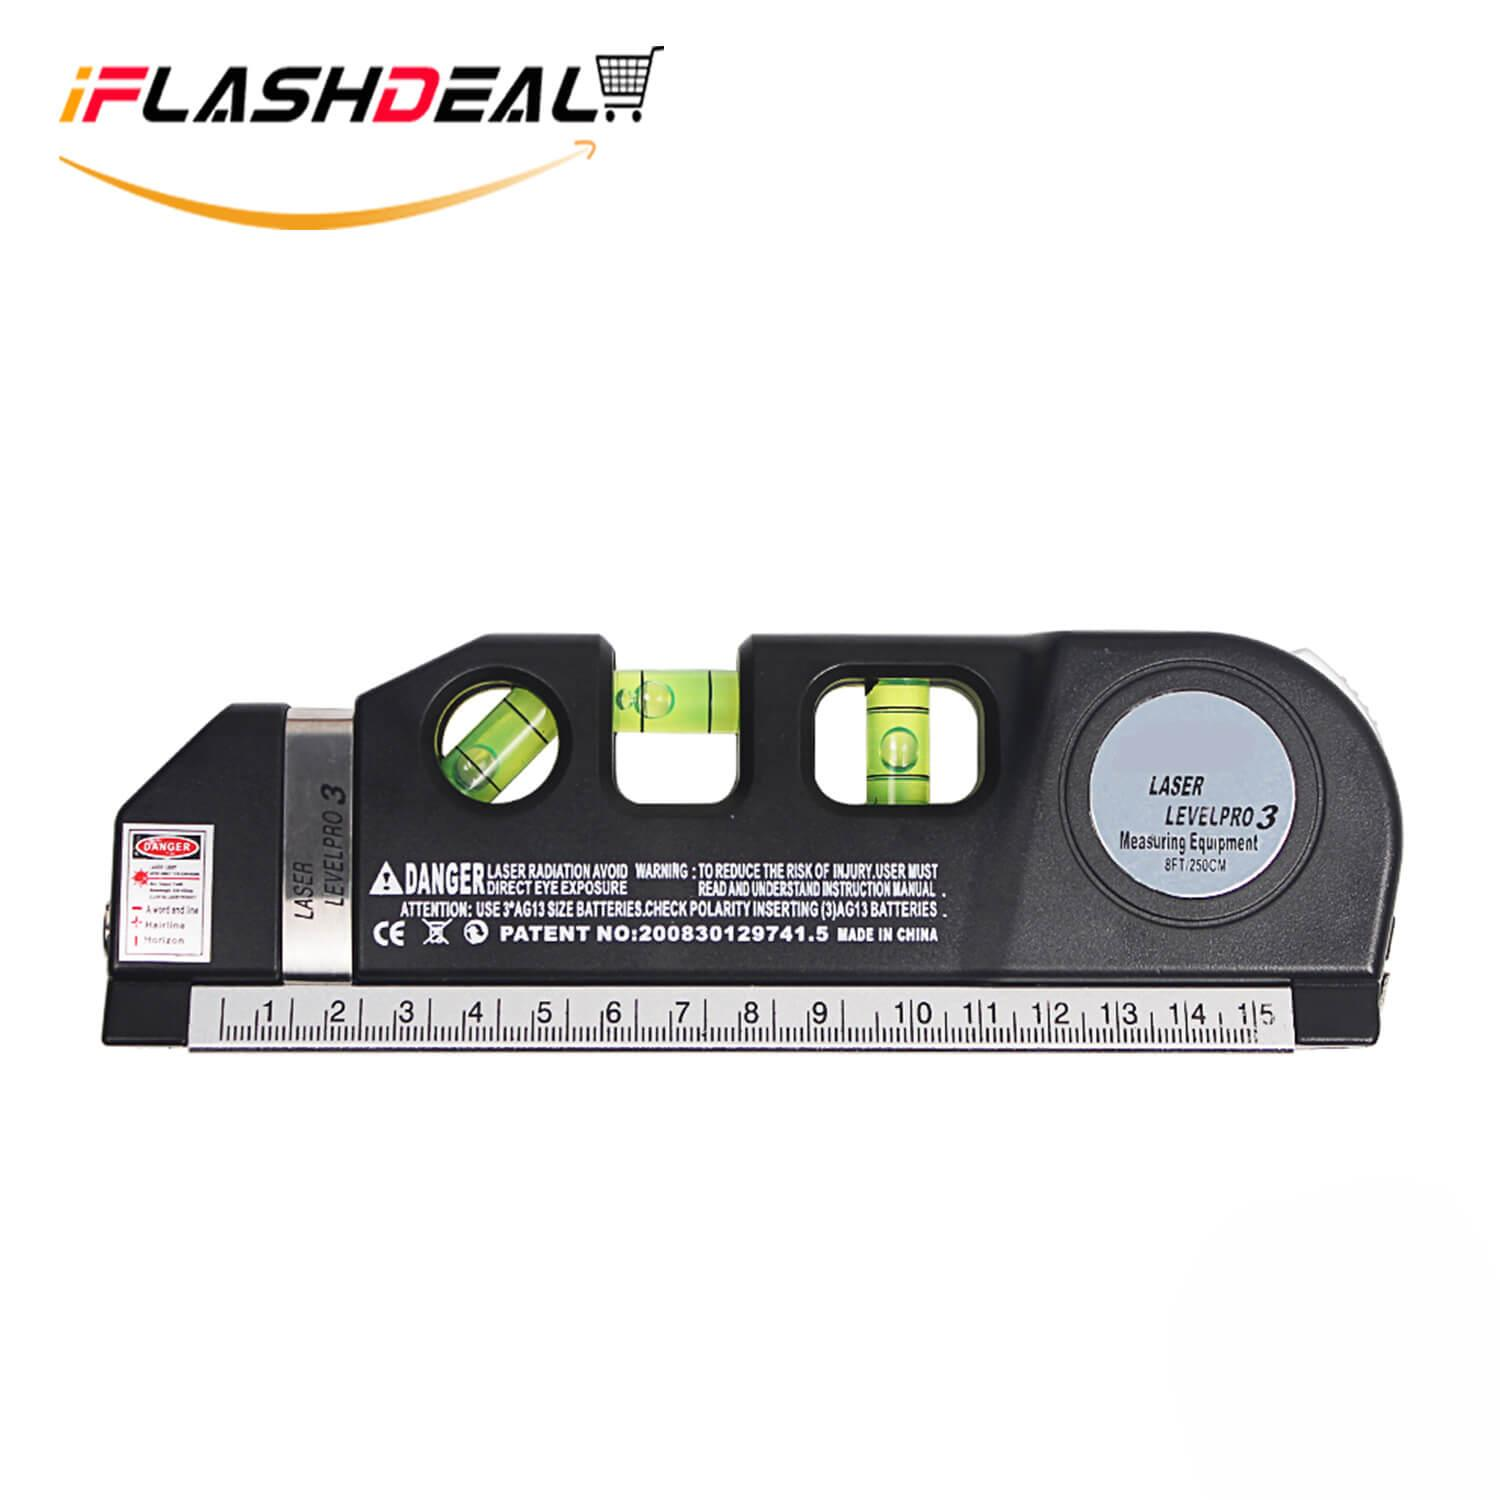 Iflashdeal Multipurpose Level Measure Line 8ft+ Measurement Tape Ruler Adjusted Standard And Metric Rulers By Iflashdeal.